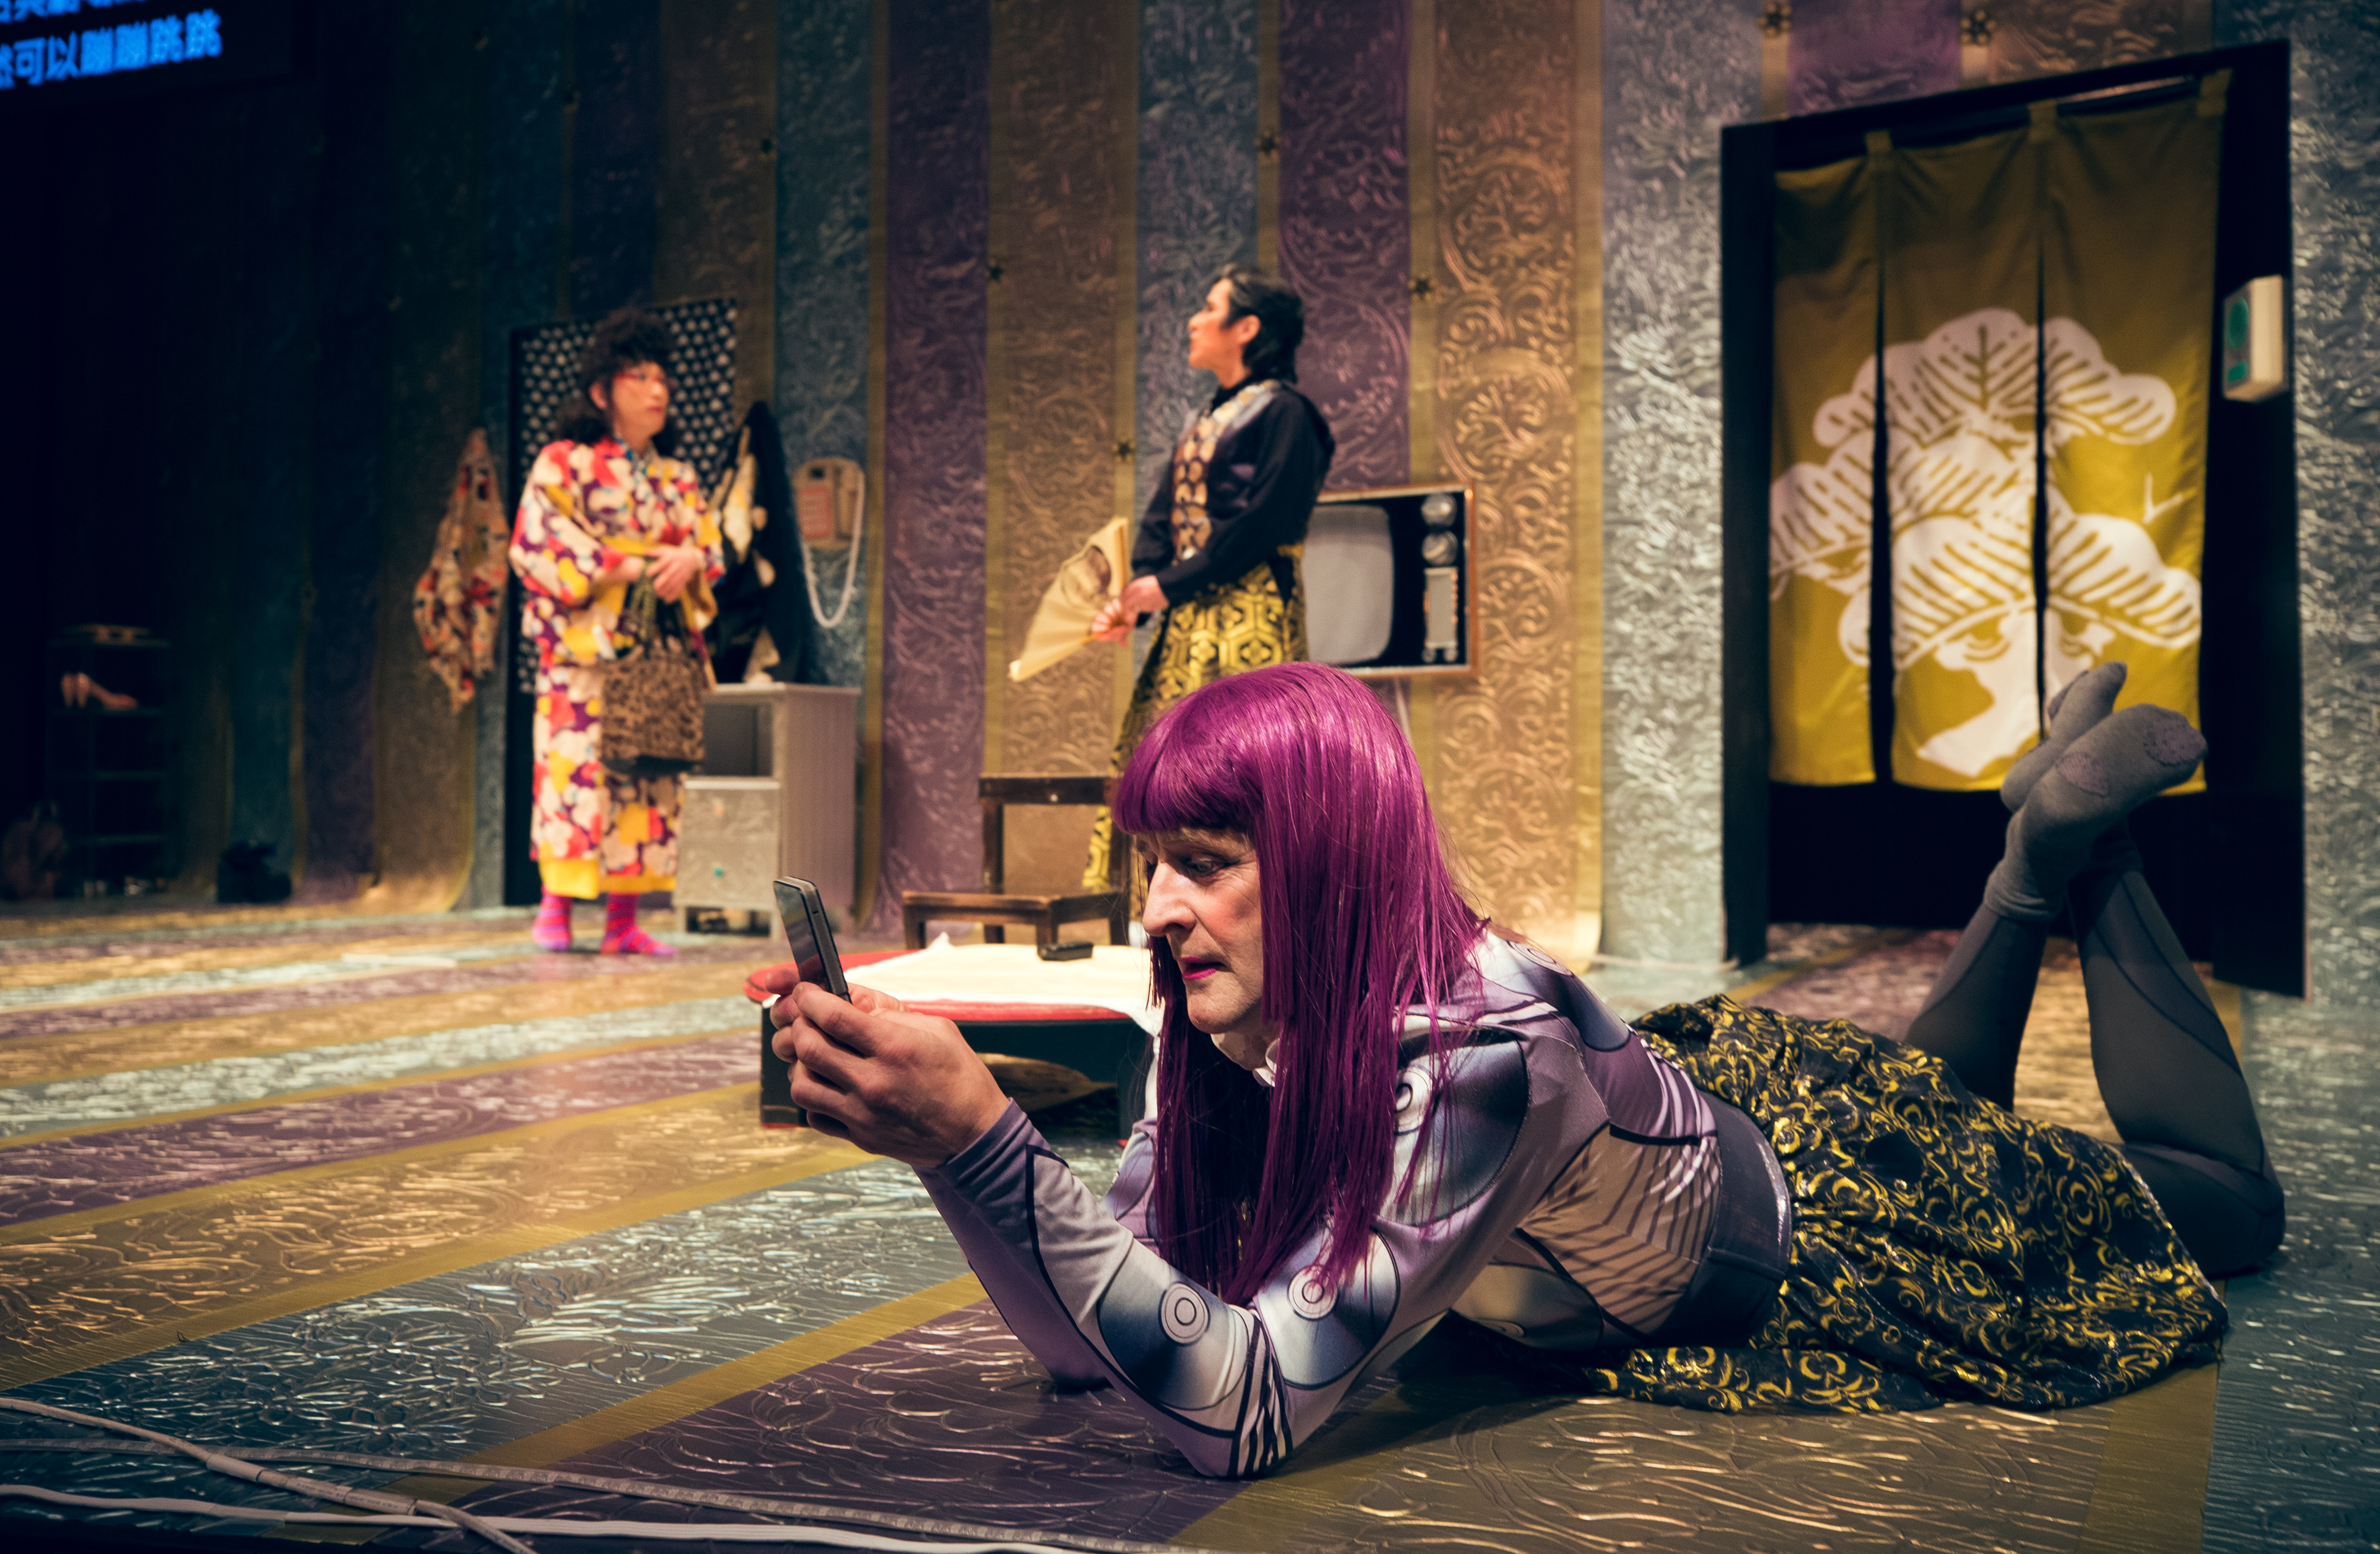 a performer in a purple wig lays on their stomach looking at a cell phone